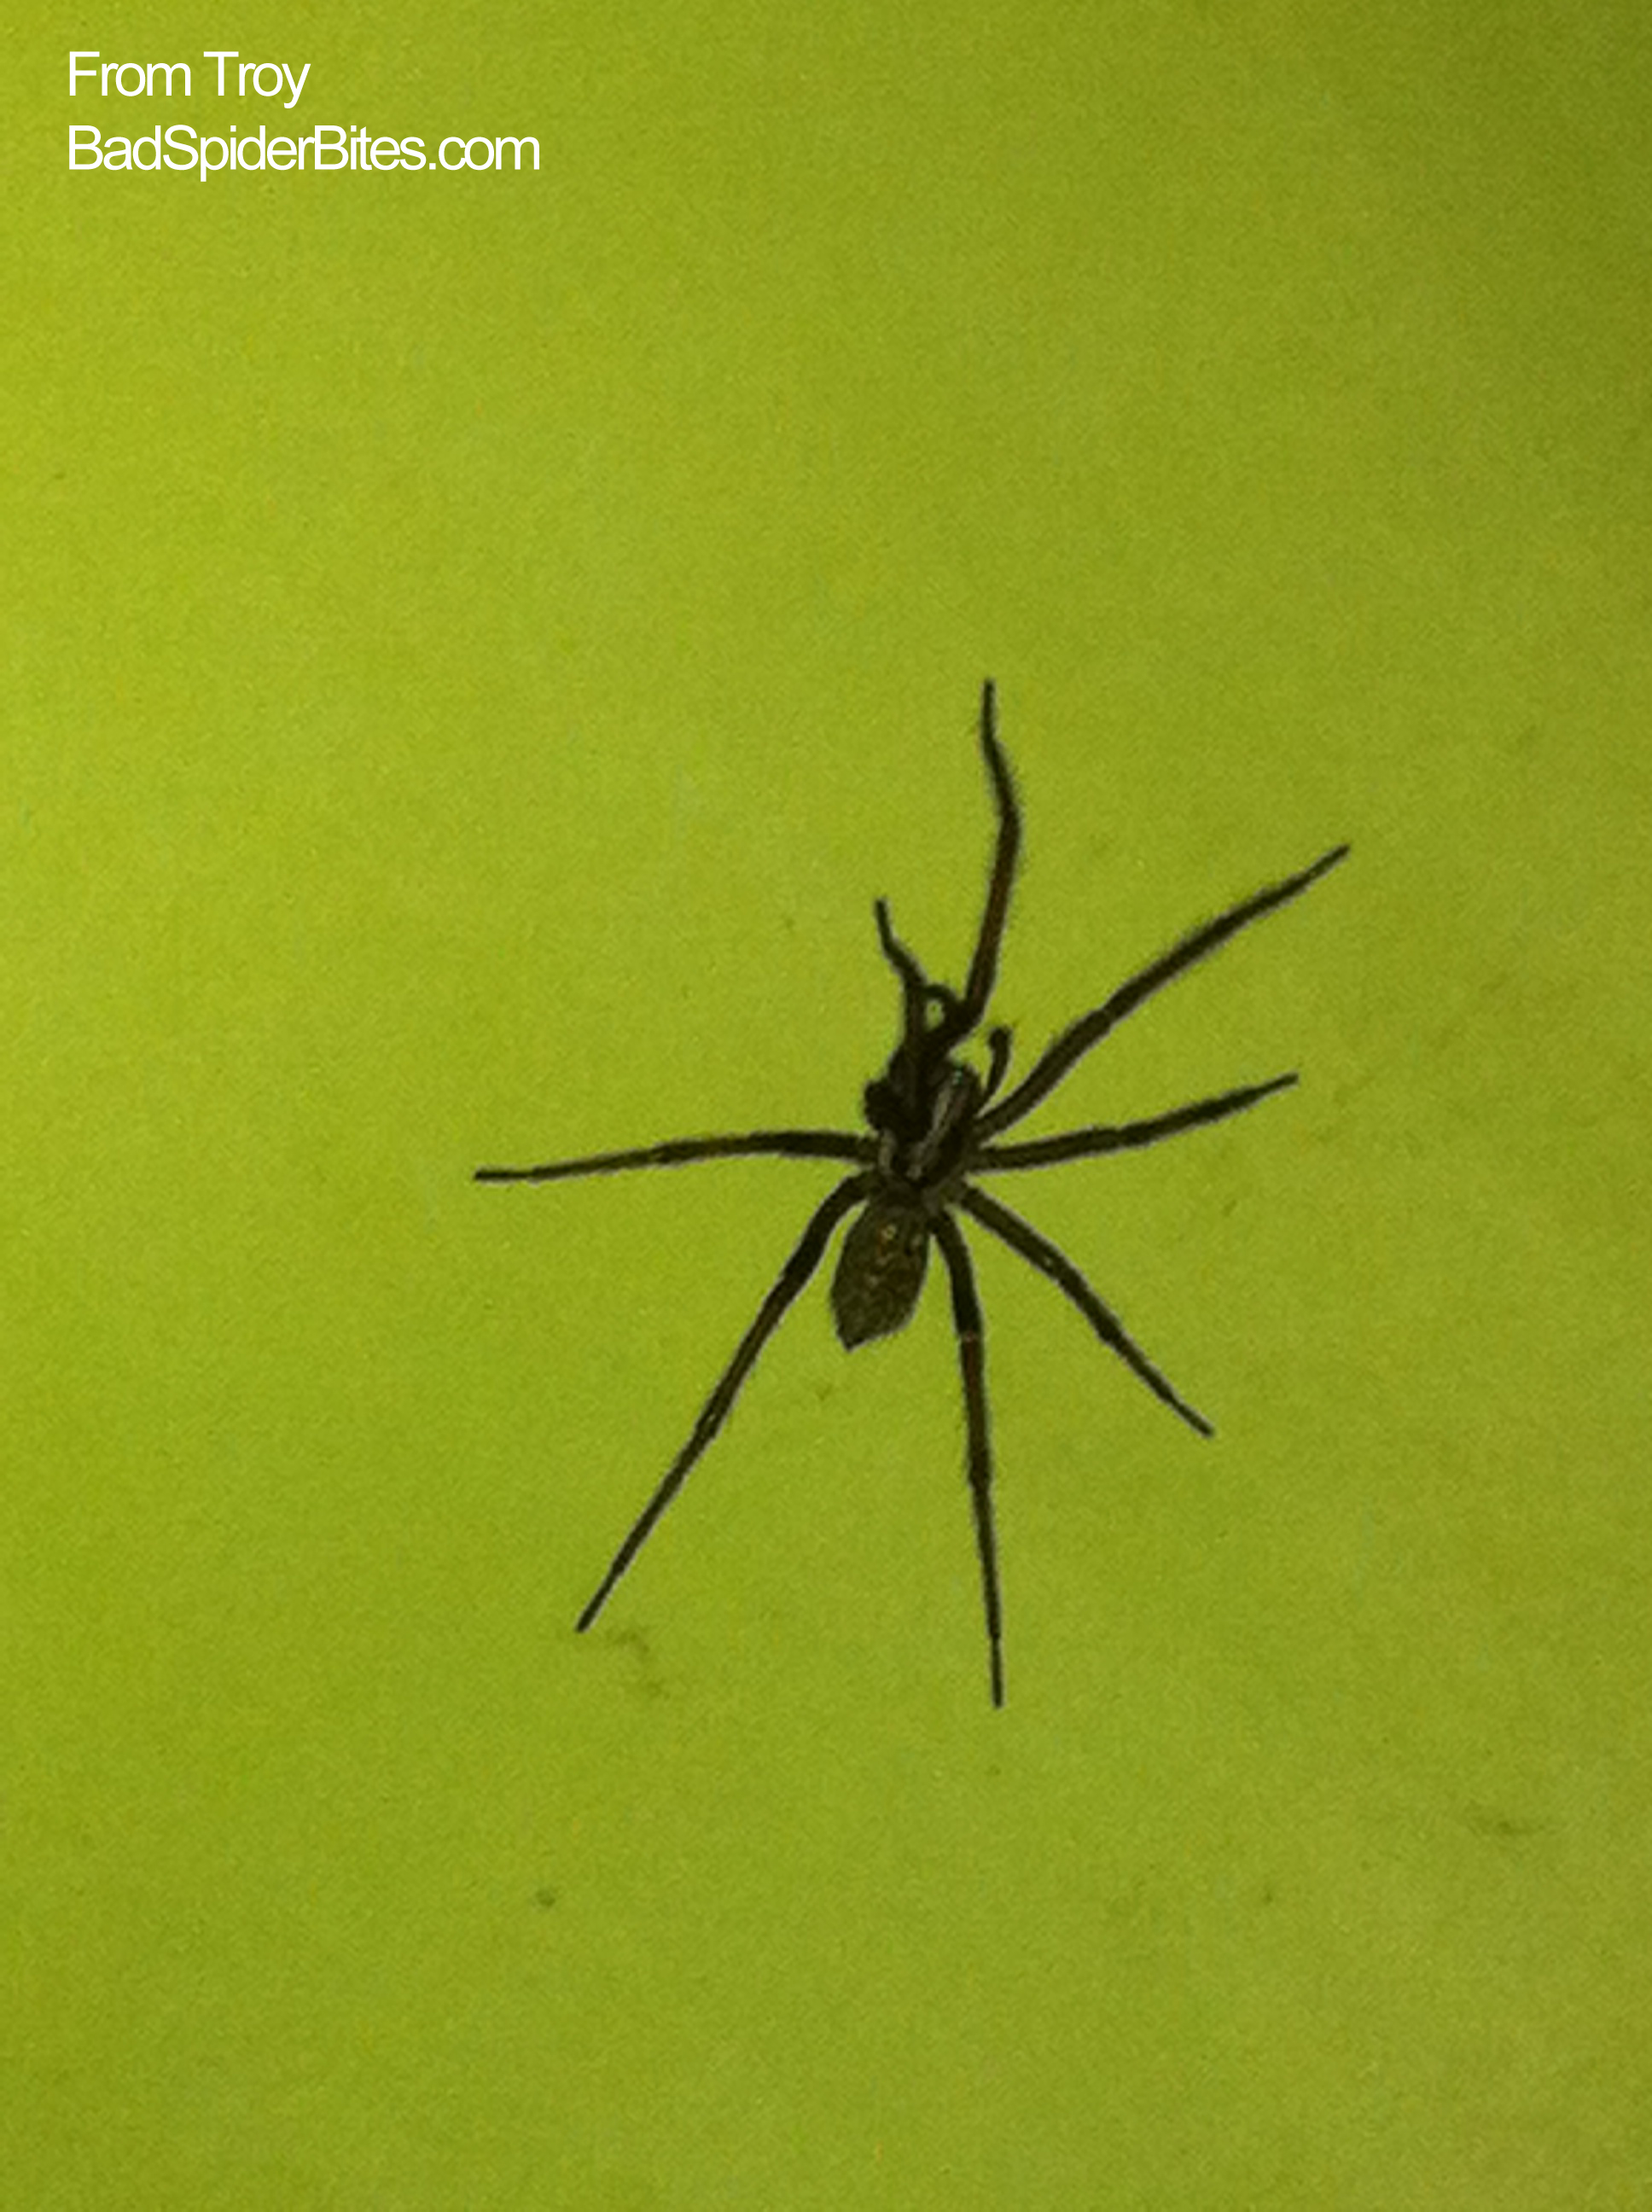 Is this a black footed yellow sac spider i found it in my apartment - I Ve Found Several Of These Spiders In My First Floor Apartment In